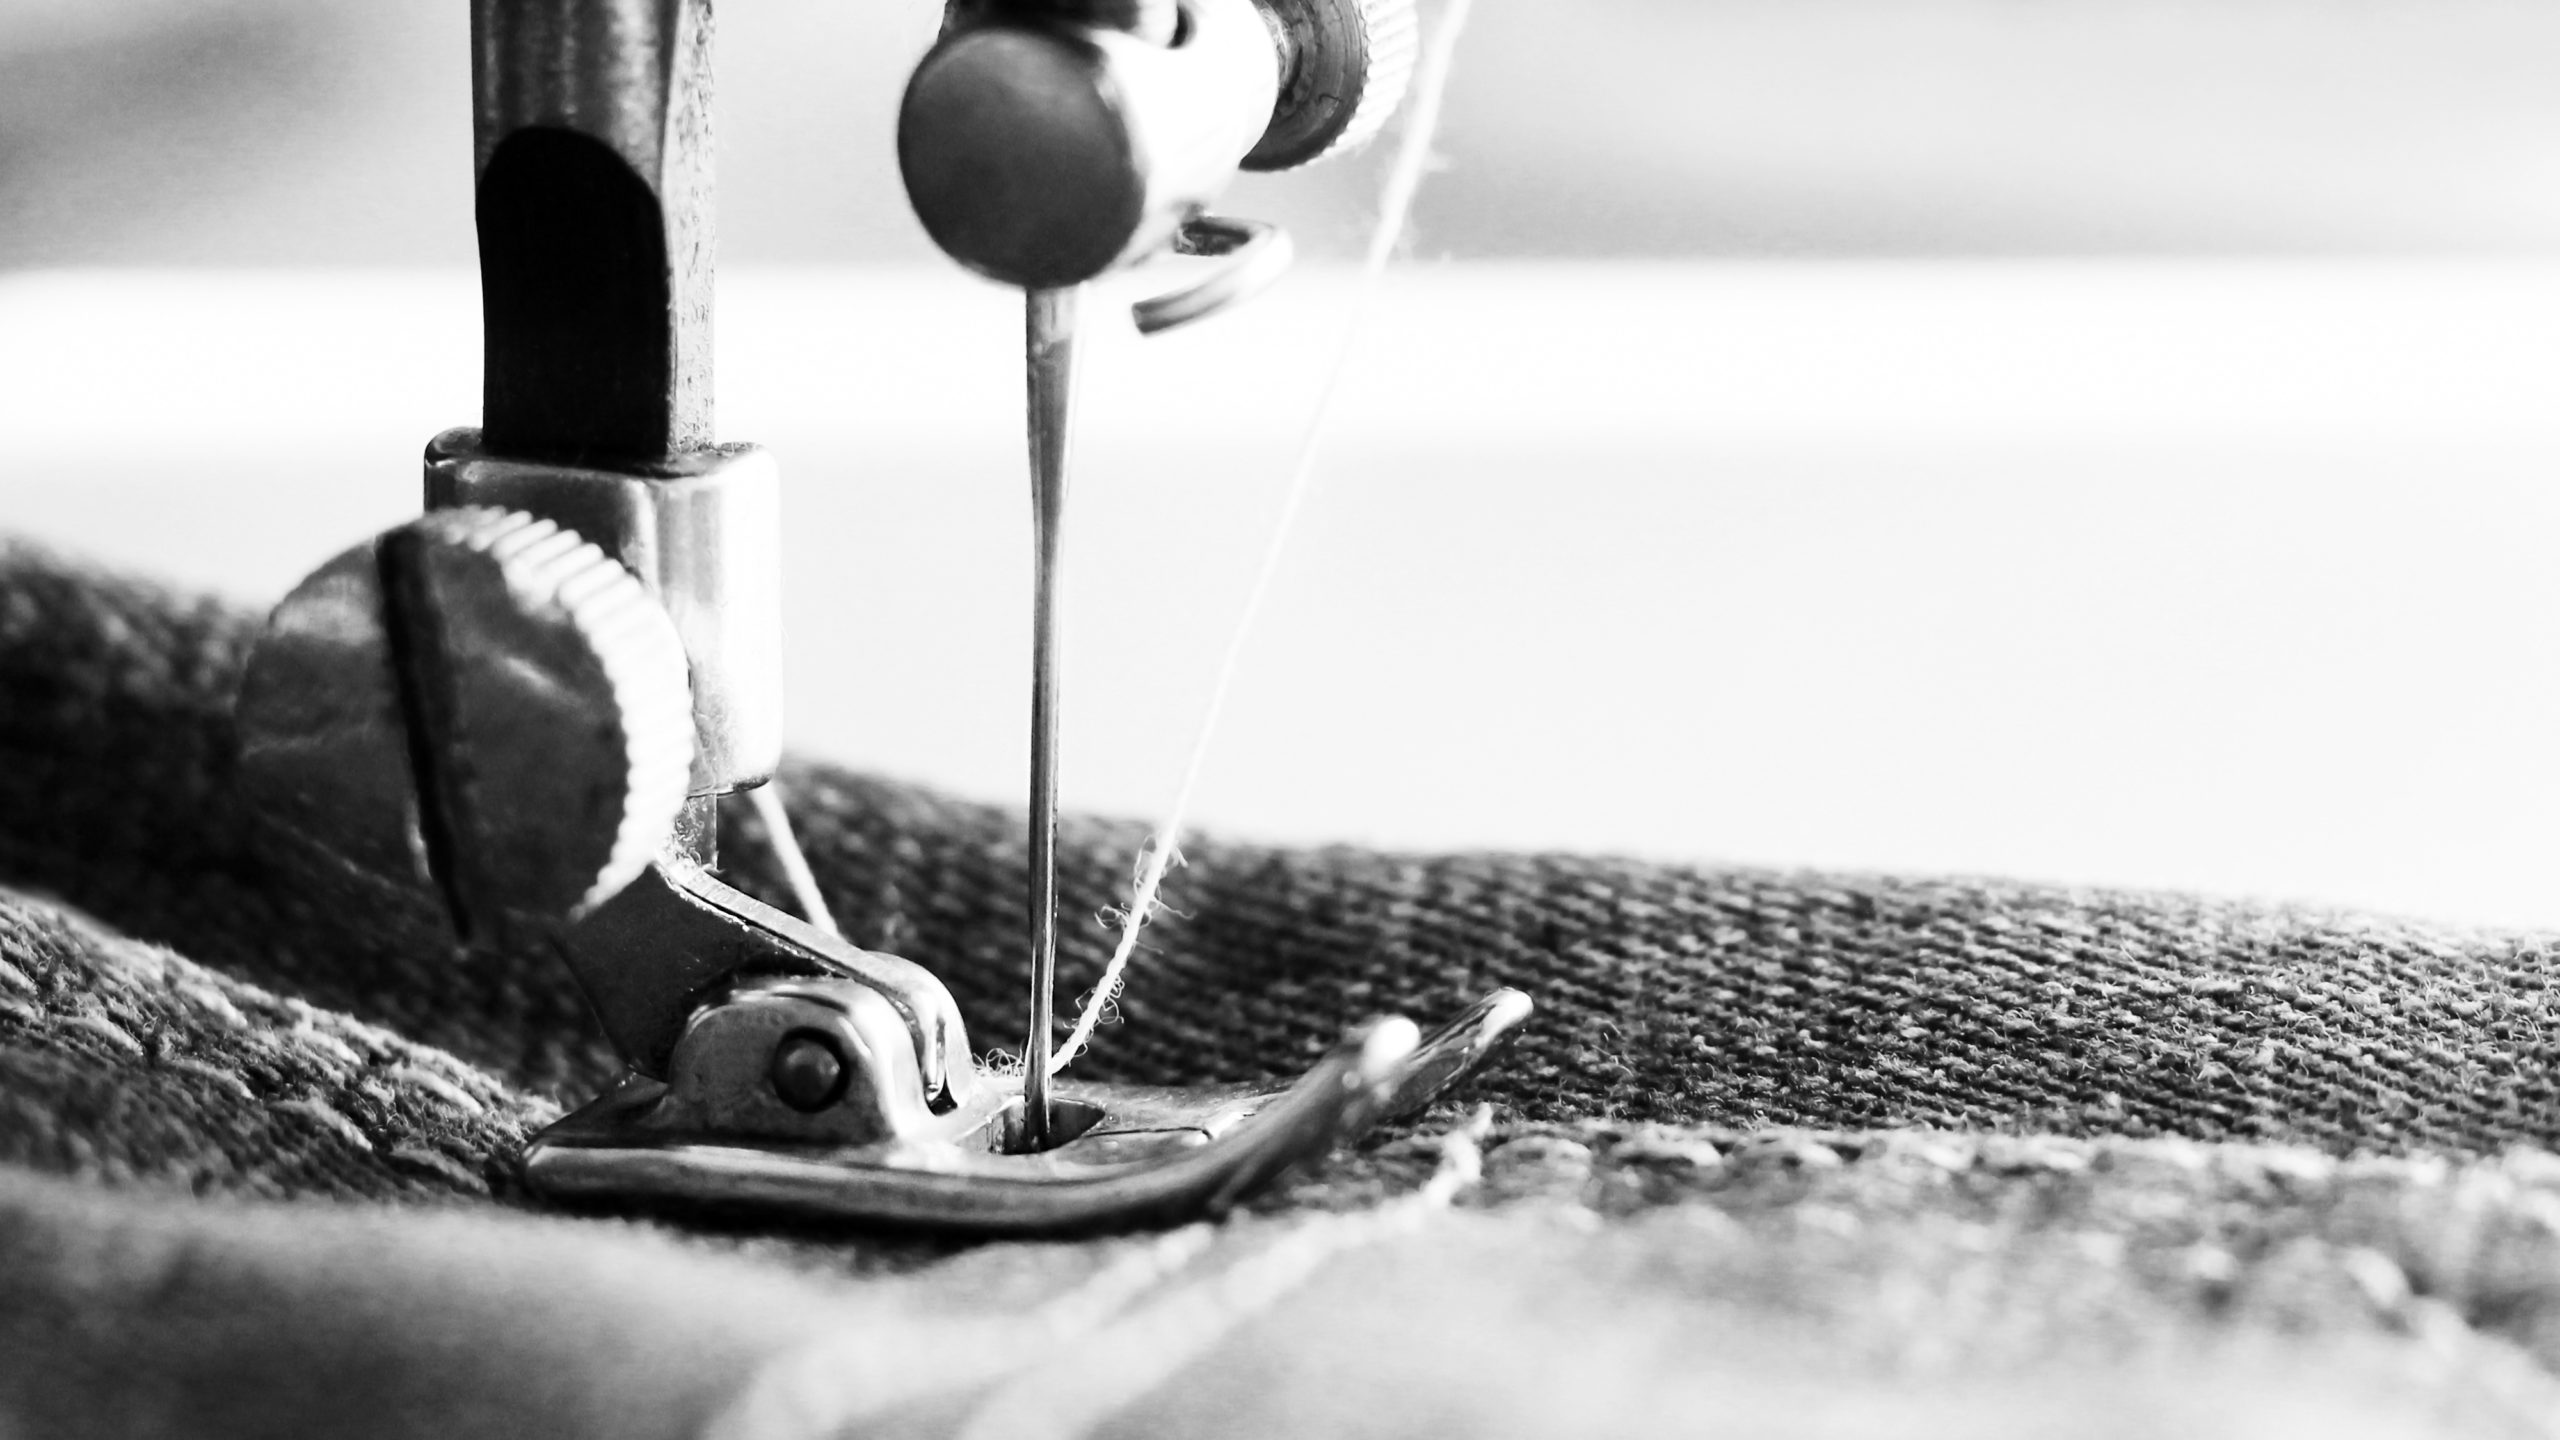 Close-up detail of the sewing machine, jeans